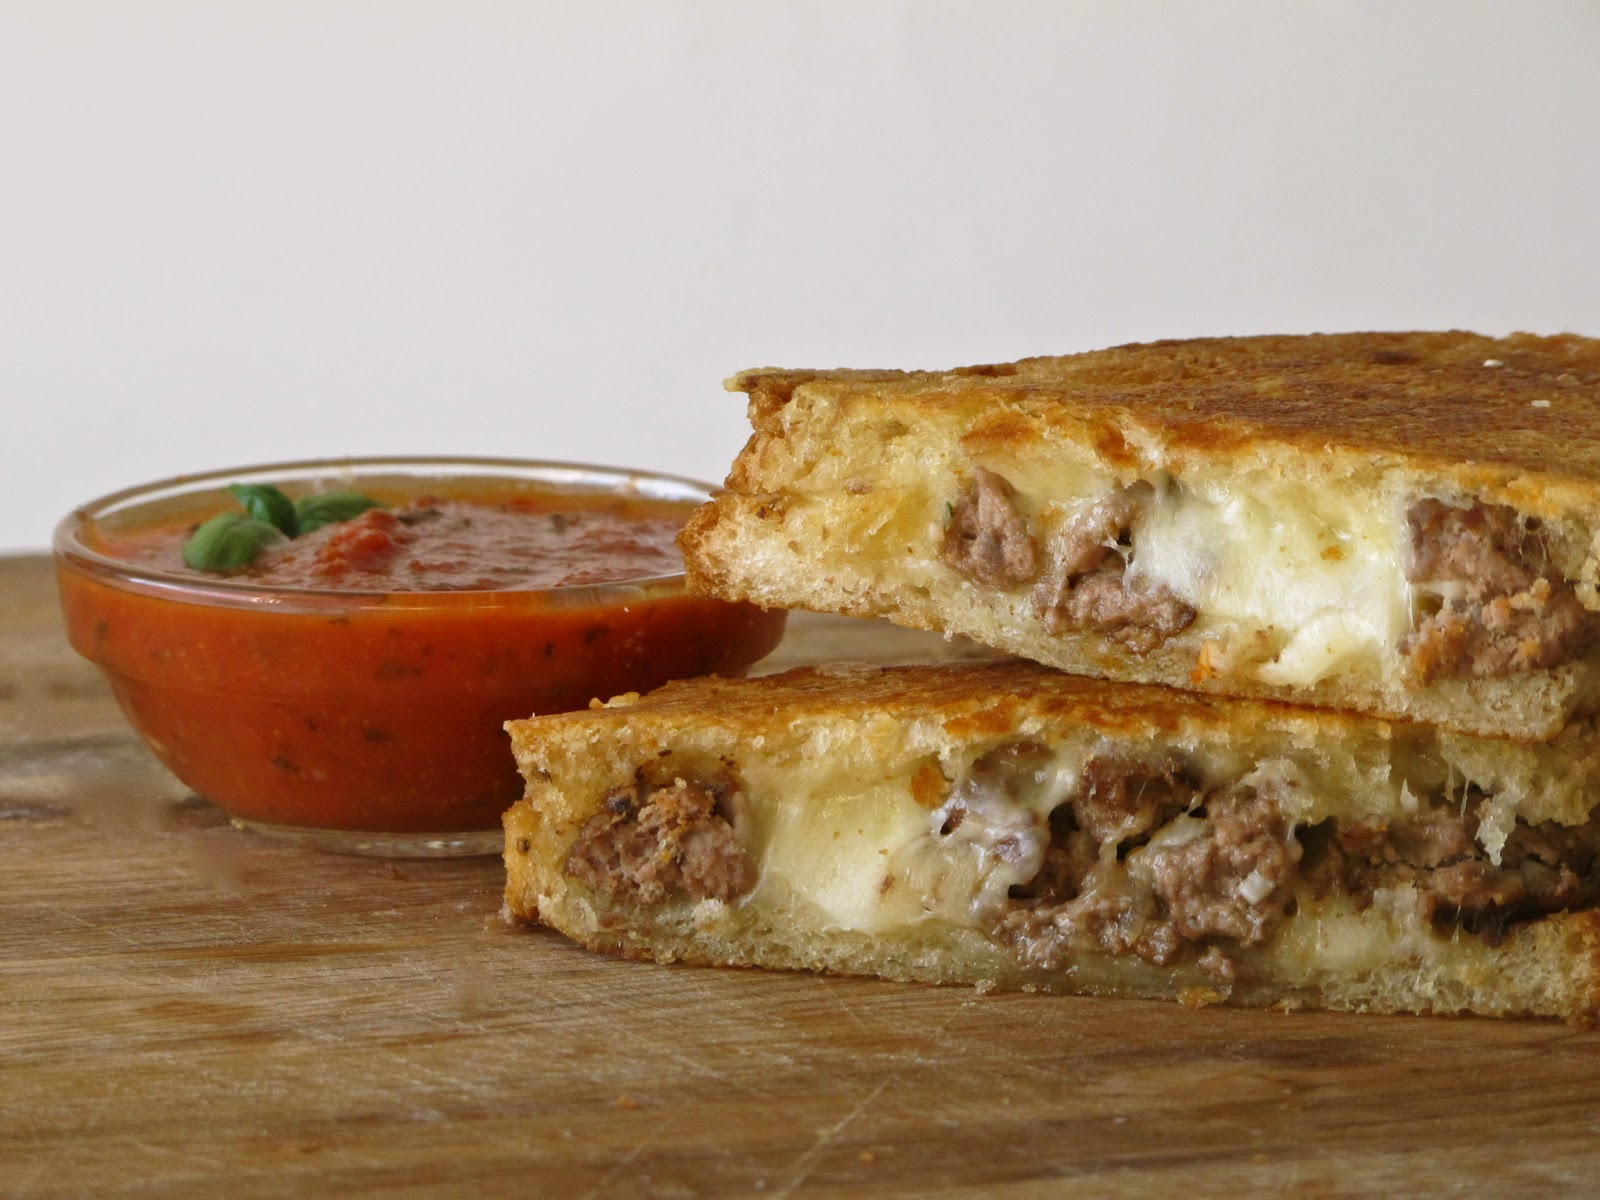 The Meatwad – Meatball Grilled Cheese with Rosemary and Olive Oil ...